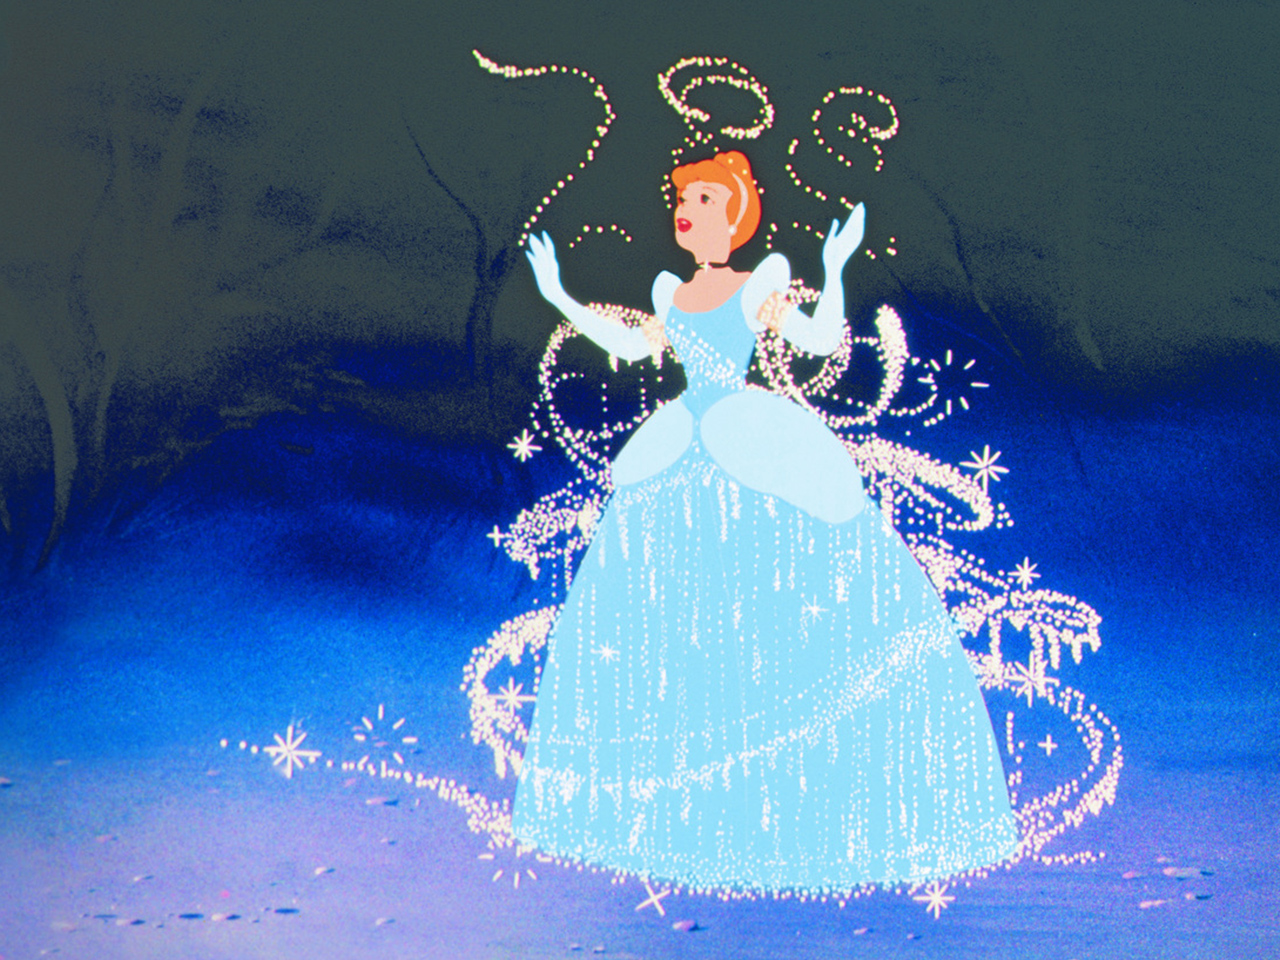 A still from the kids' animated movie Cinderella